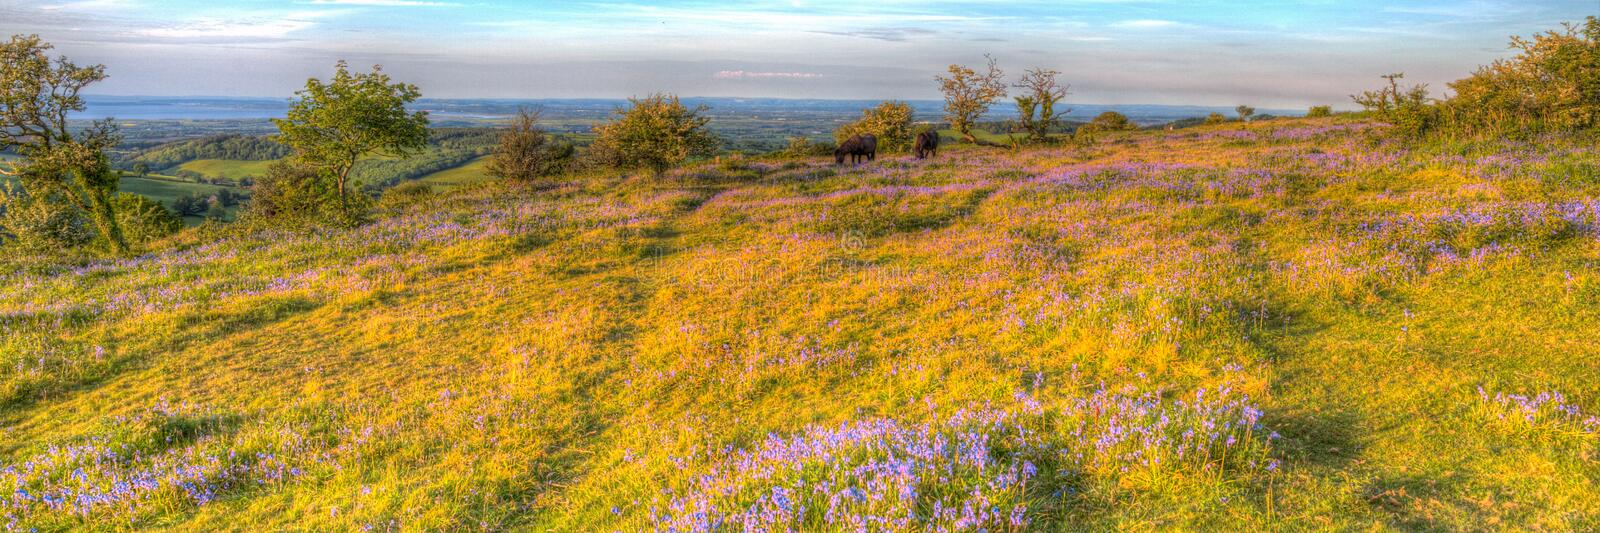 Quantock Hills Somerset bluebells and wild ponies on a summer evening in colourful HDR royalty free stock photography